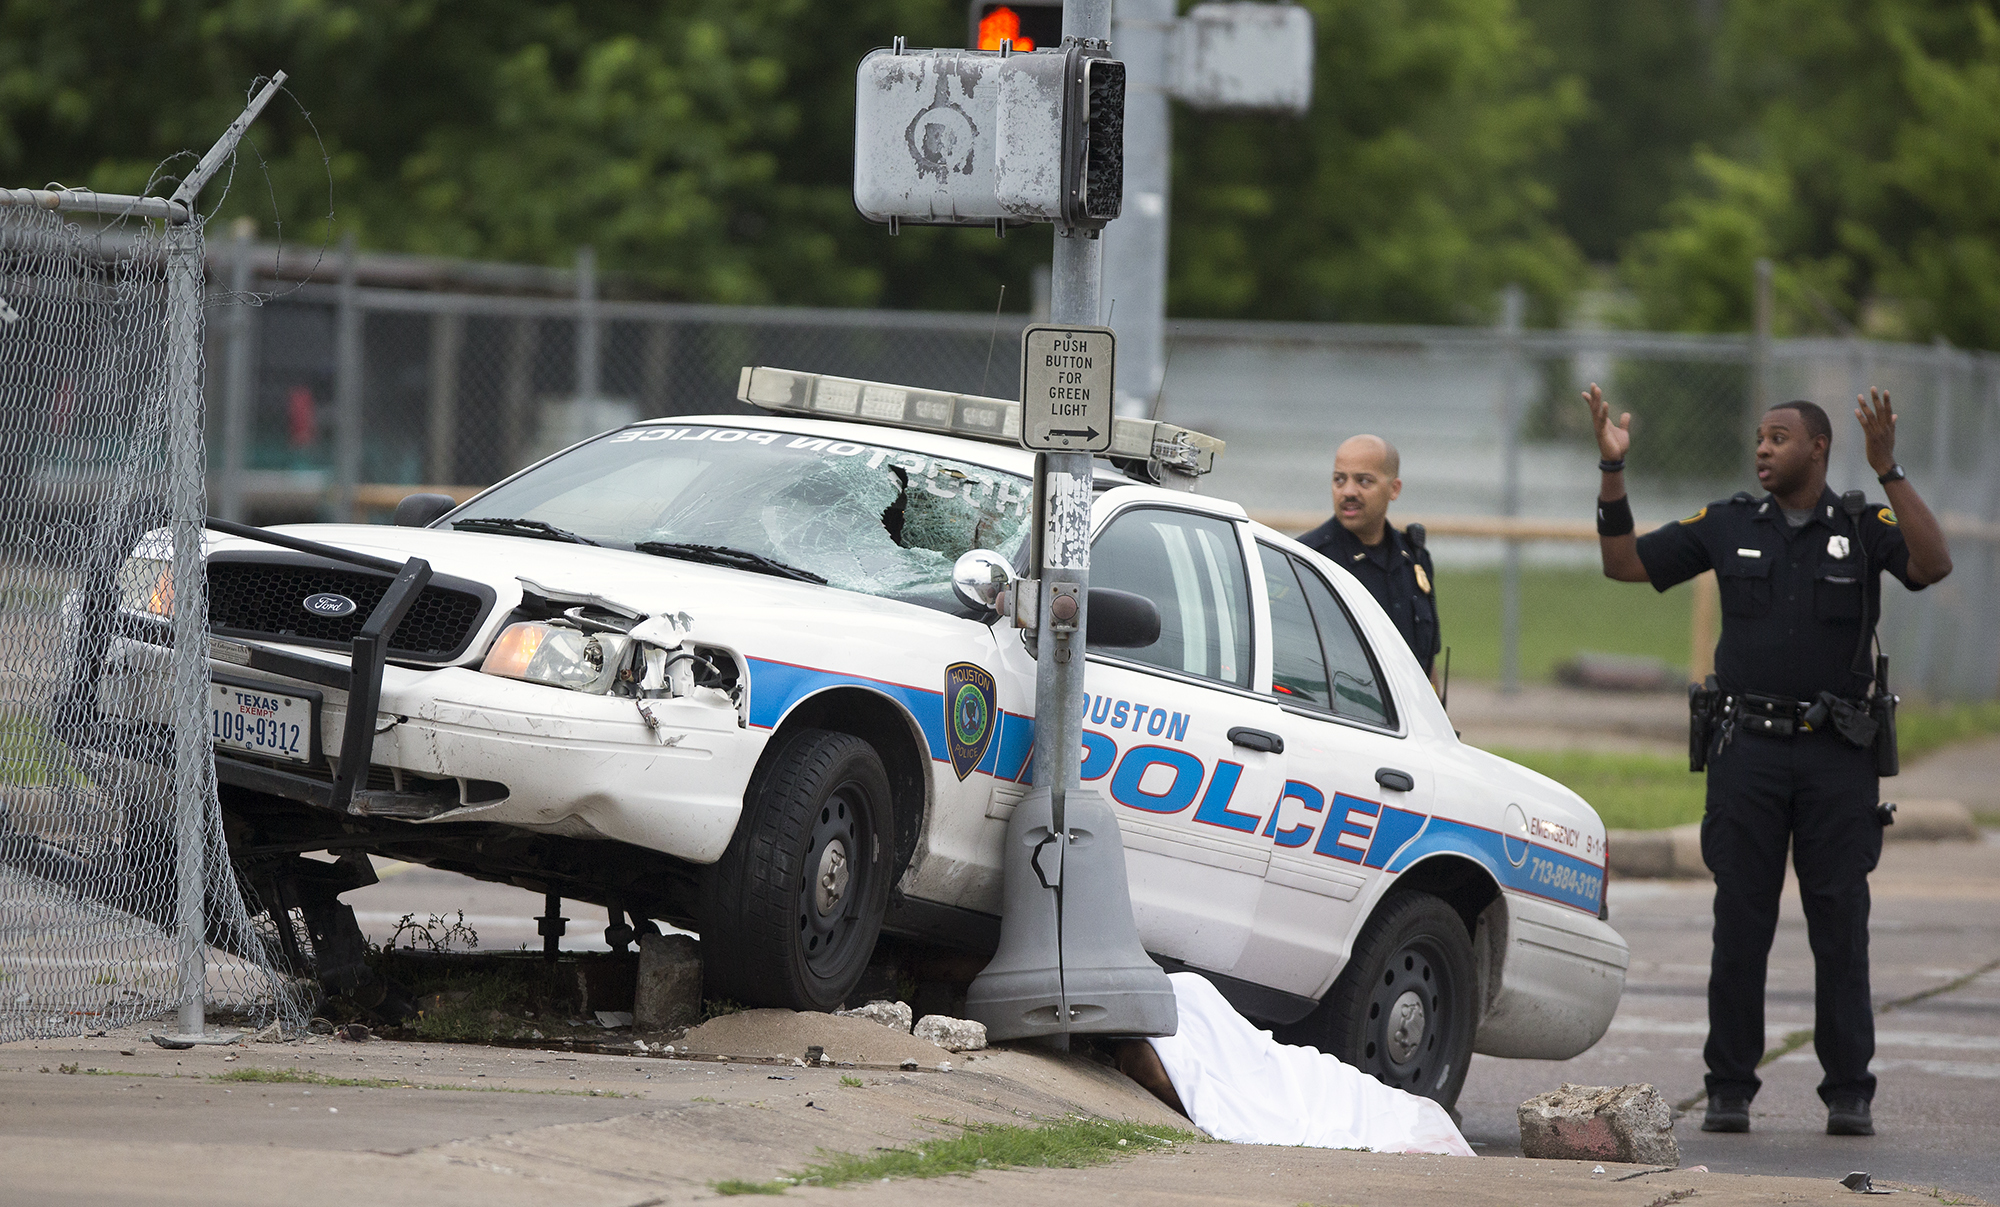 Bicycle rider s in crash with HPD squad car HoustonChronicle